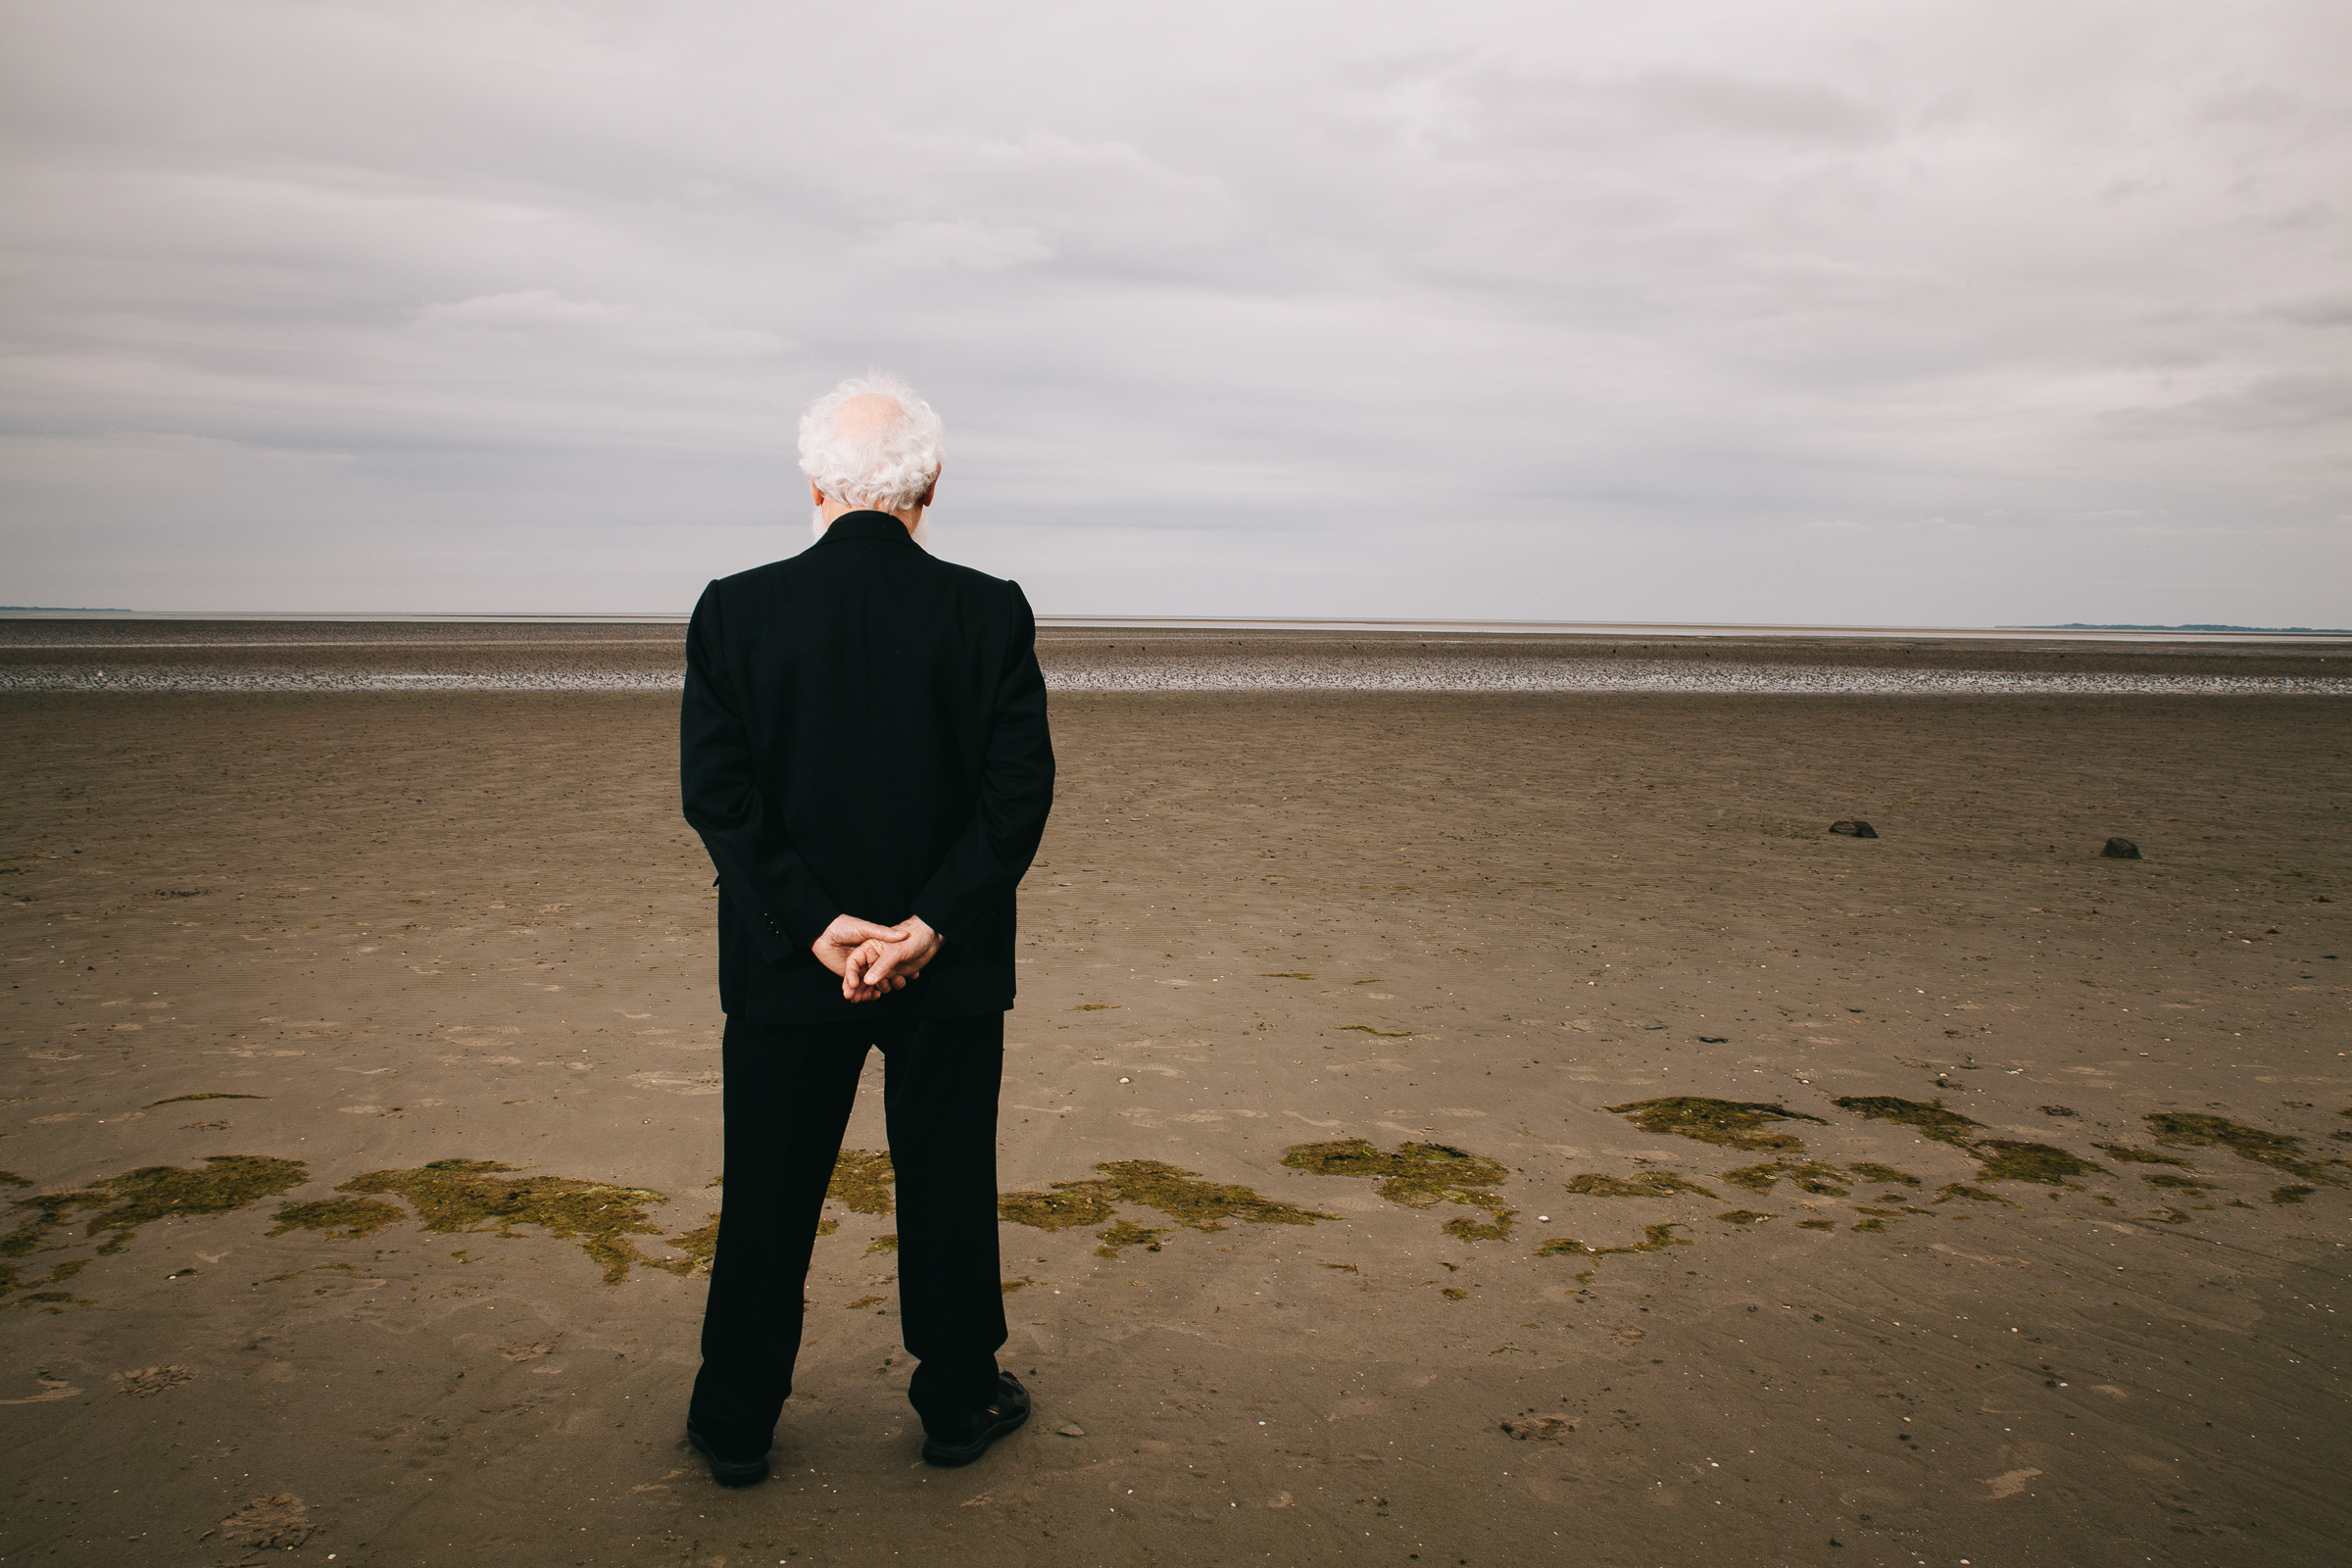 Pondering Eternity - It was here that I took my final photo to finish our day together. As he stood on ''The Priests' Beach'' pondering eternity, a sudden Divine sorrow mingled with joy came over me that today of all days was (as Fr.Maher always puts it) ''A Divine Appointment''.